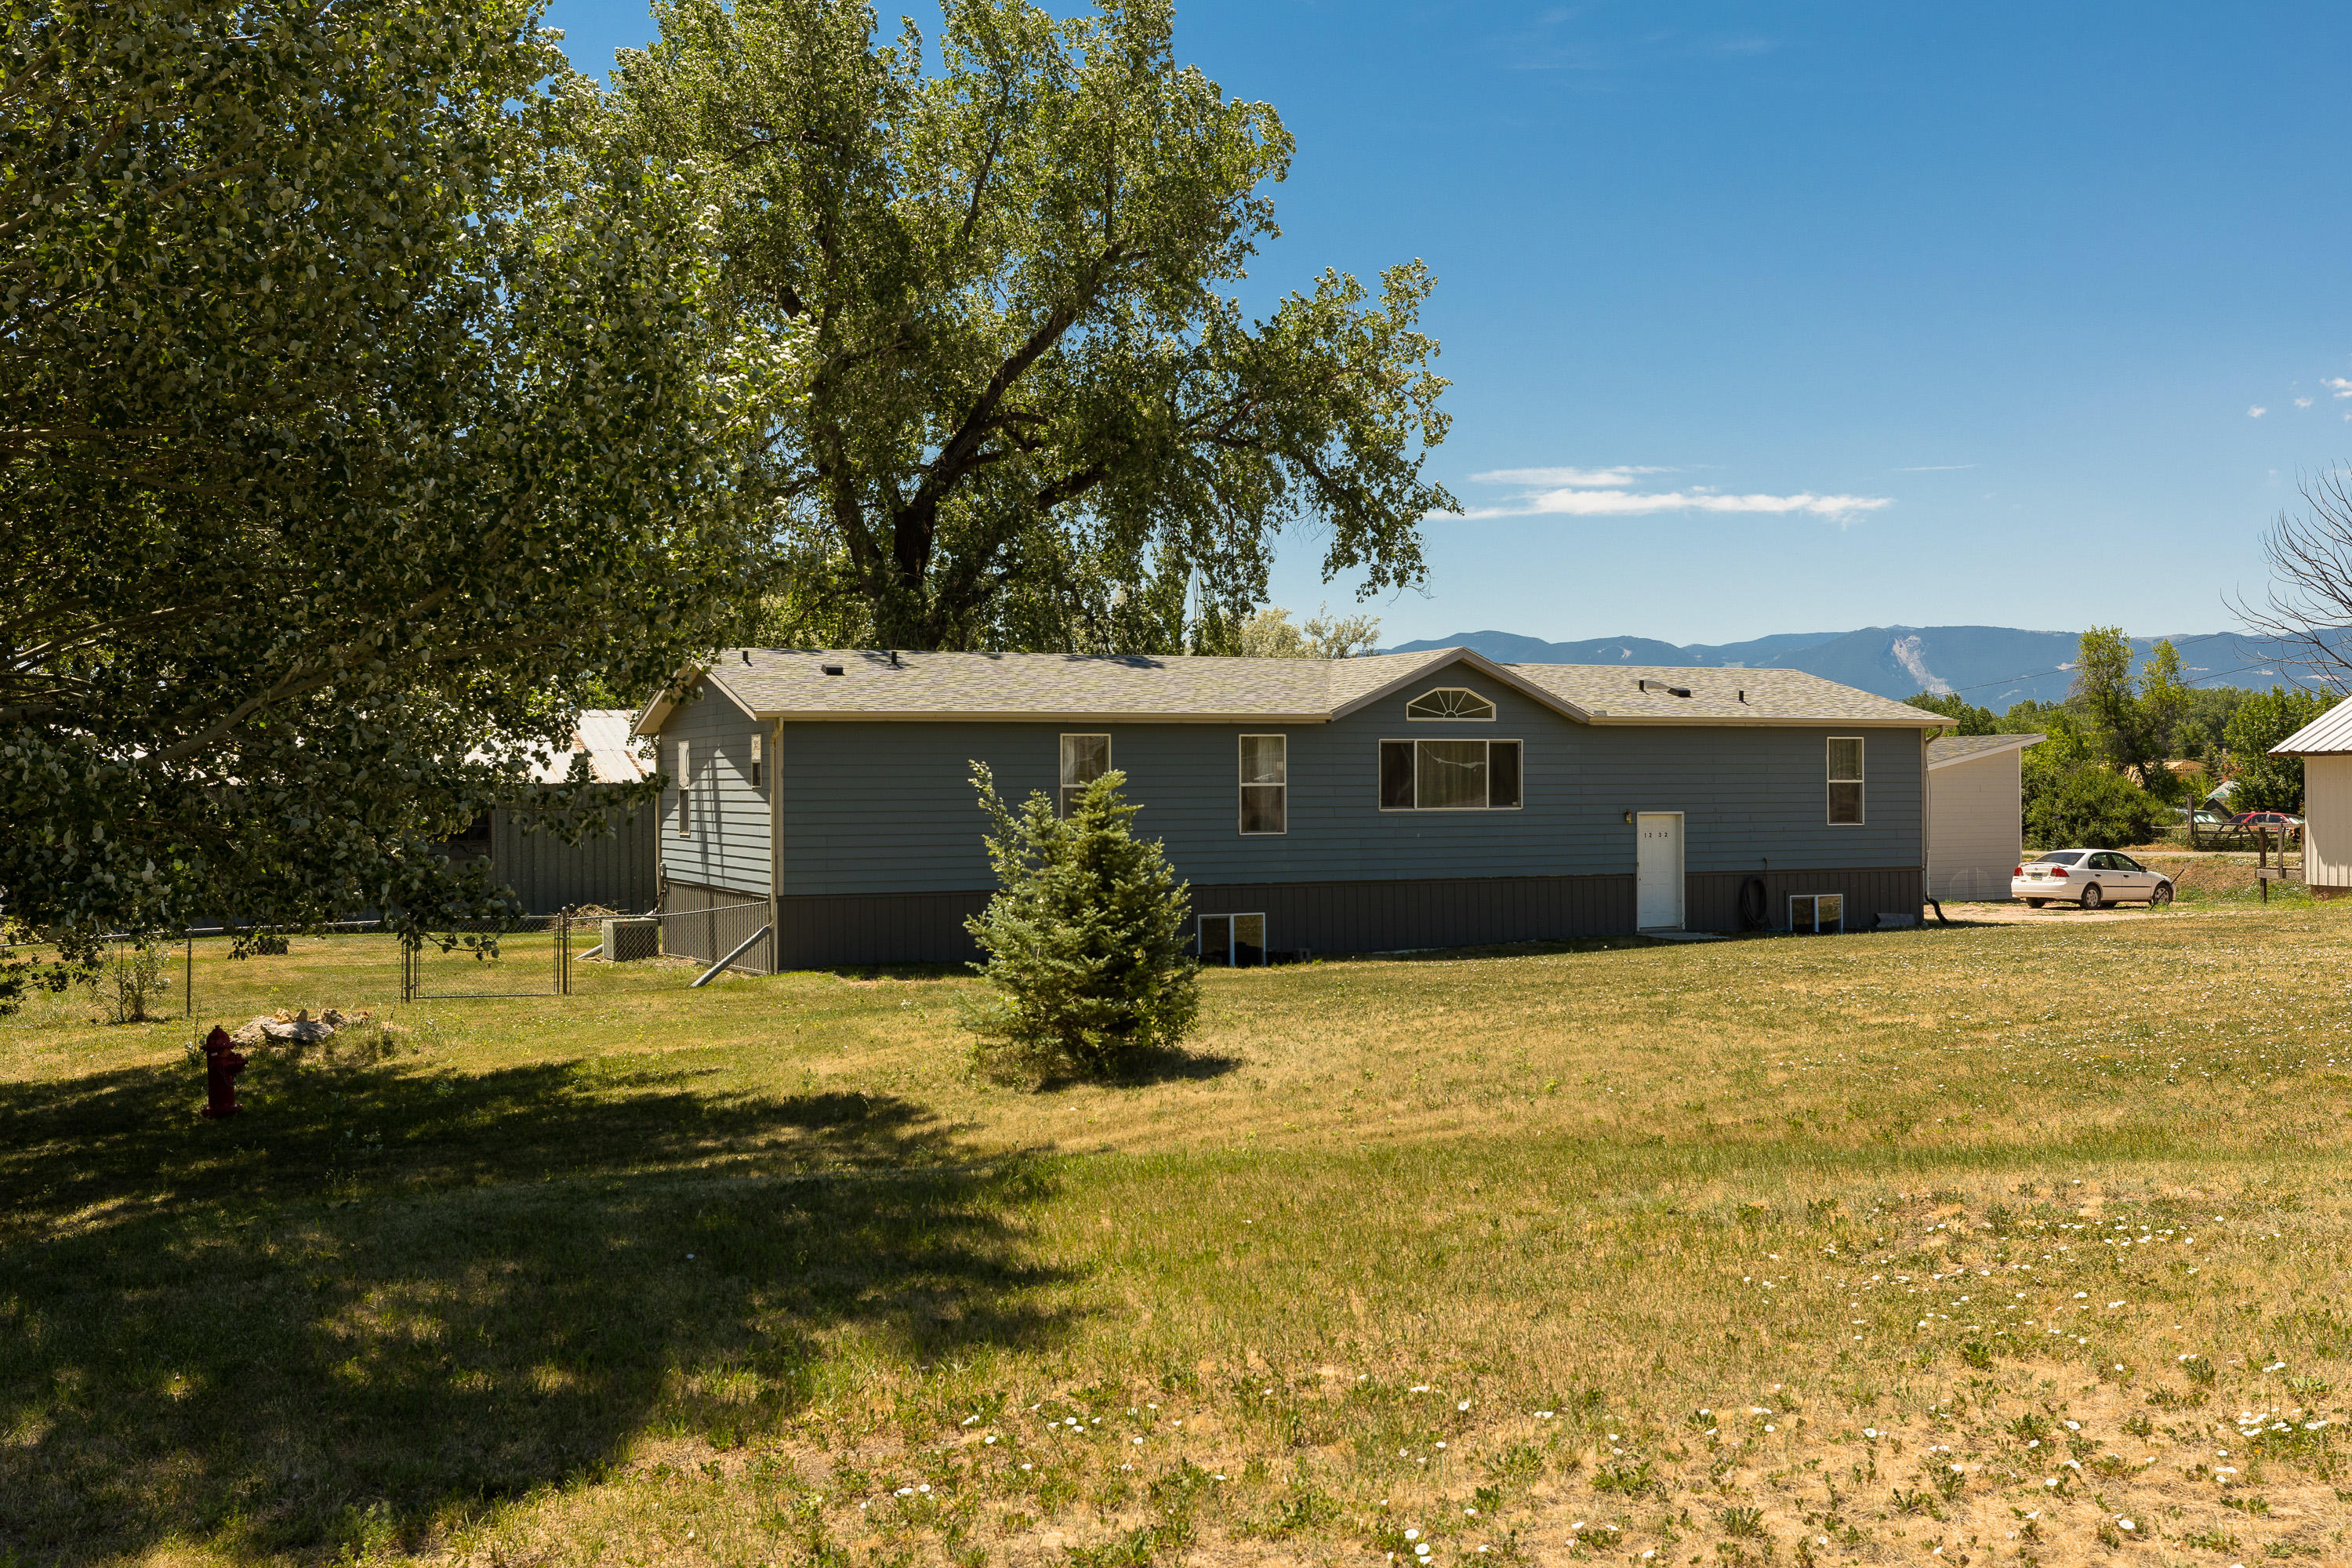 1232 St Hwy 345, Ranchester, Wyoming 82839, 6 Bedrooms Bedrooms, ,3 BathroomsBathrooms,Residential,For Sale,St Hwy 345,21-647